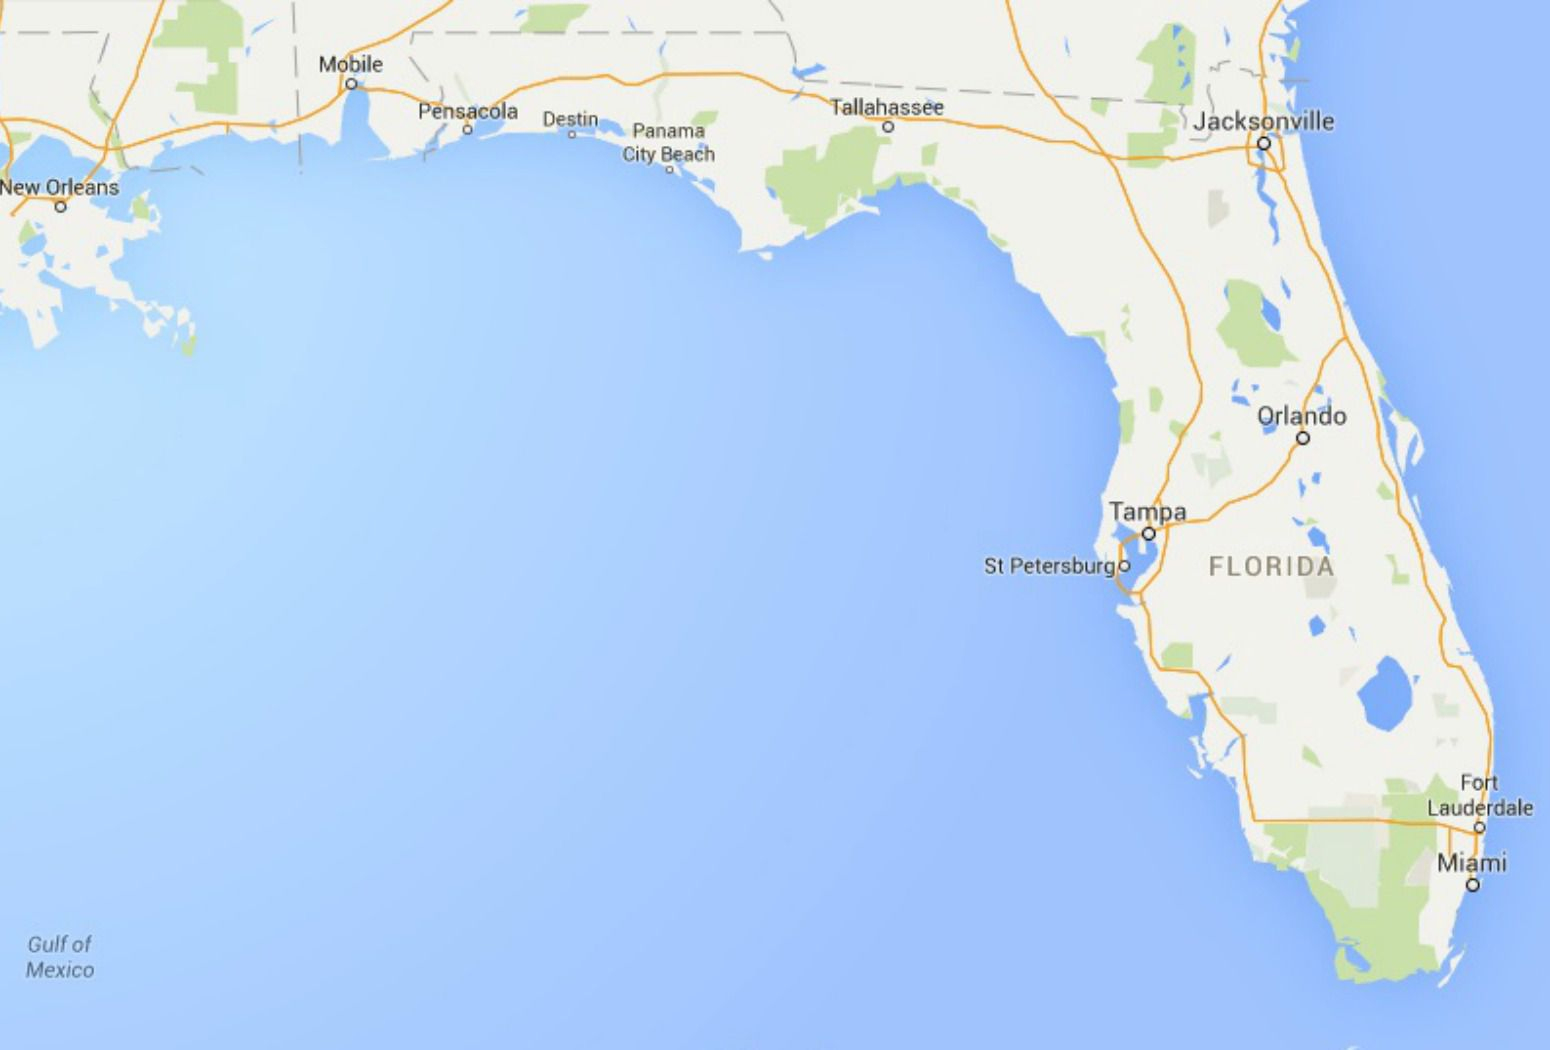 Maps Of Florida: Orlando, Tampa, Miami, Keys, And More - Google Maps Panama City Beach Florida